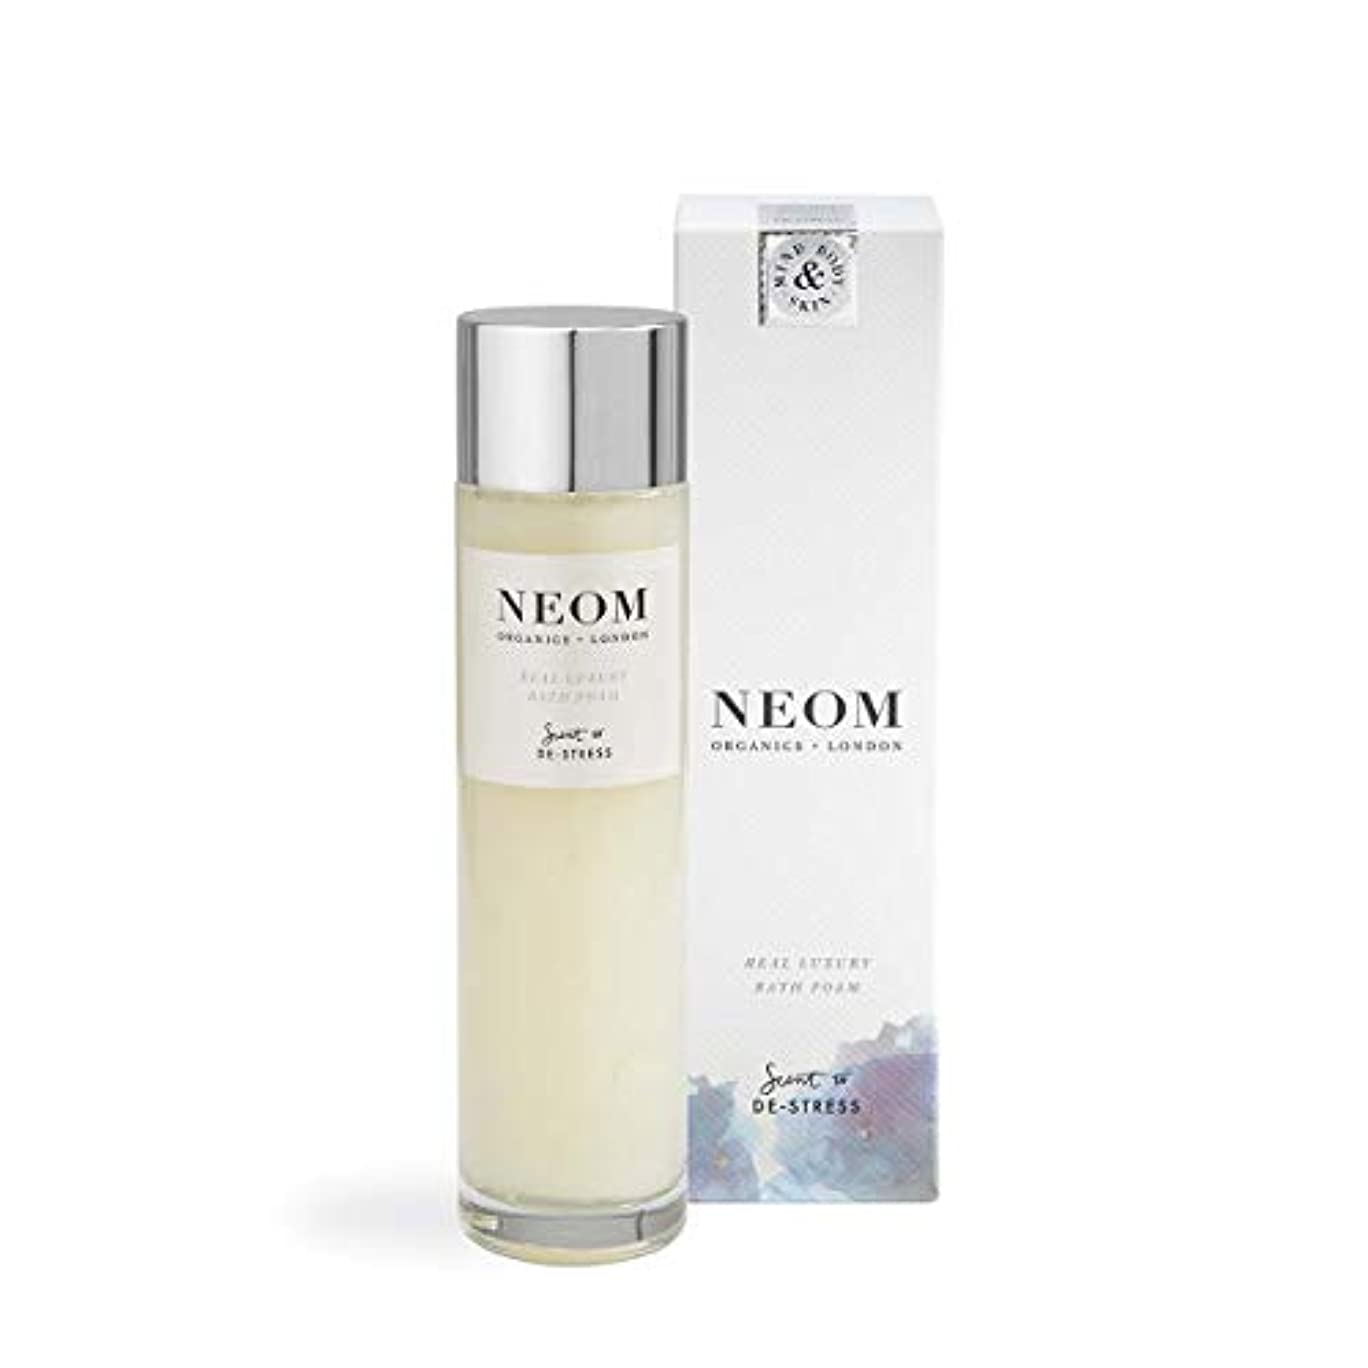 NEOM バスフォーム REAL LUXURY(DE-STRESS)